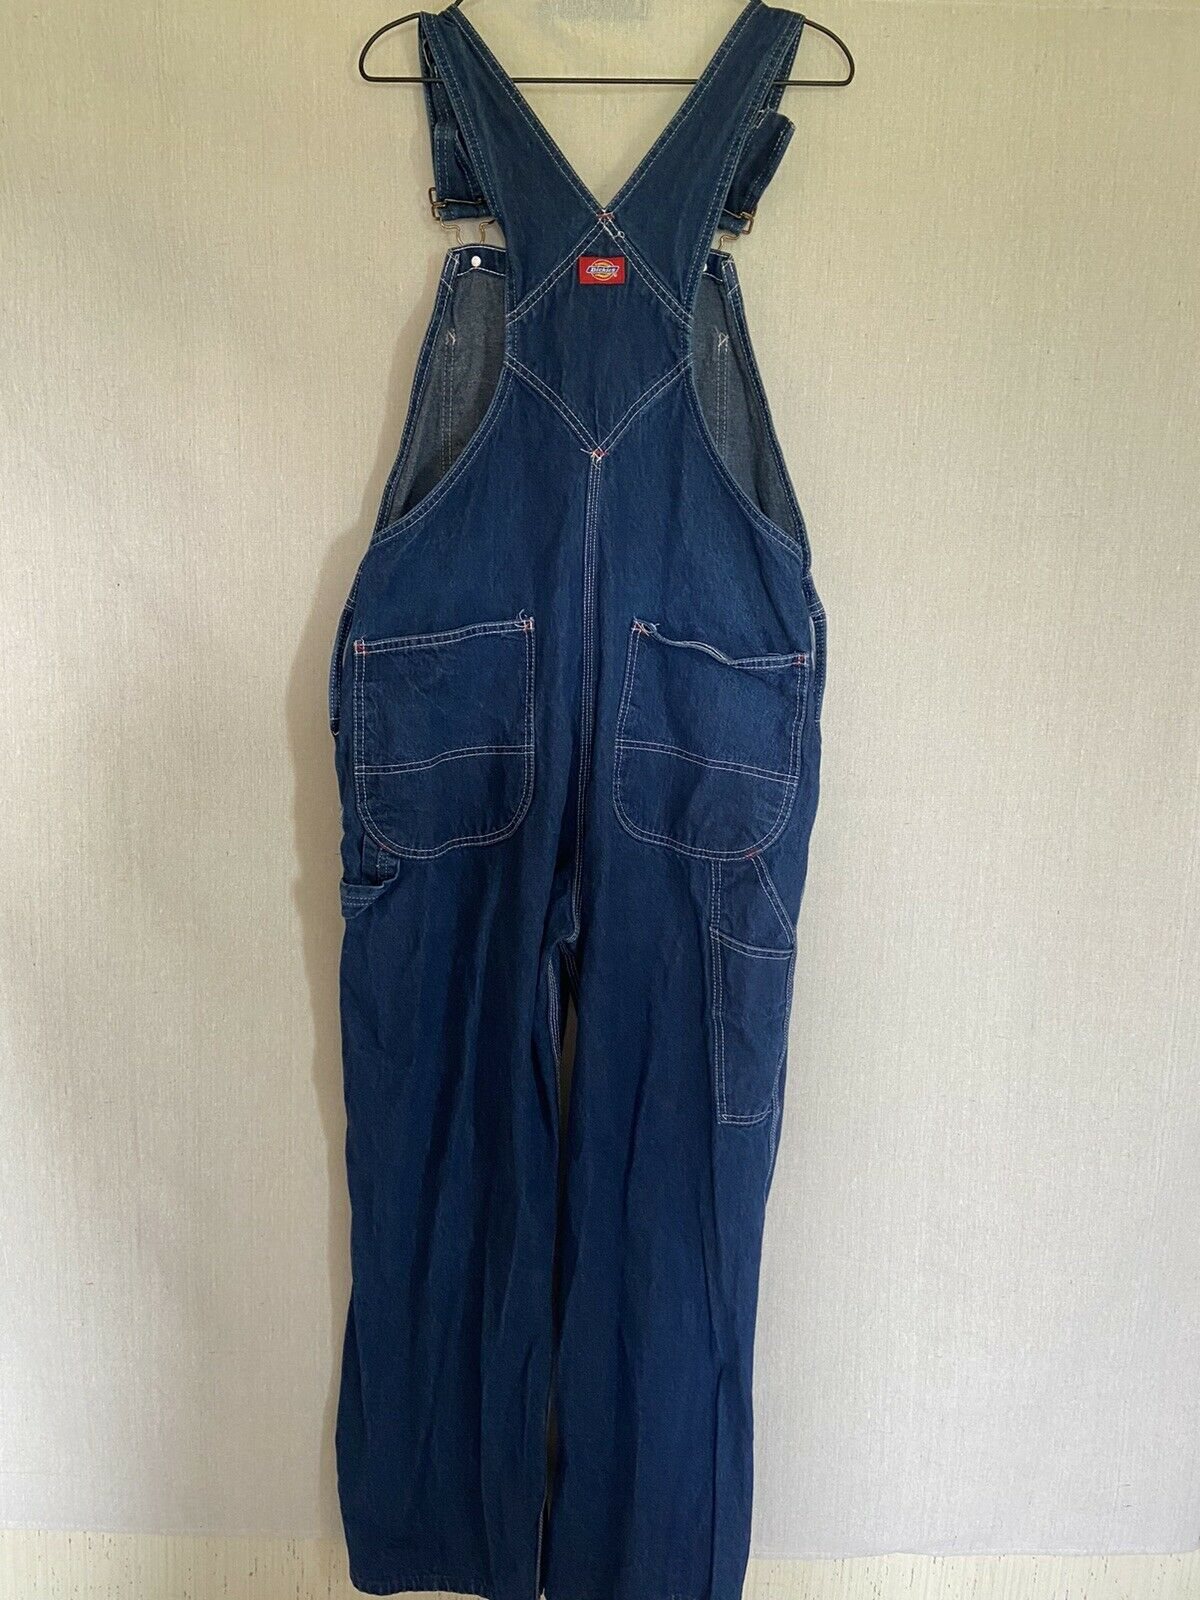 Dickies Denim Overalls Size 38x30 Fit 36x29 - image 5